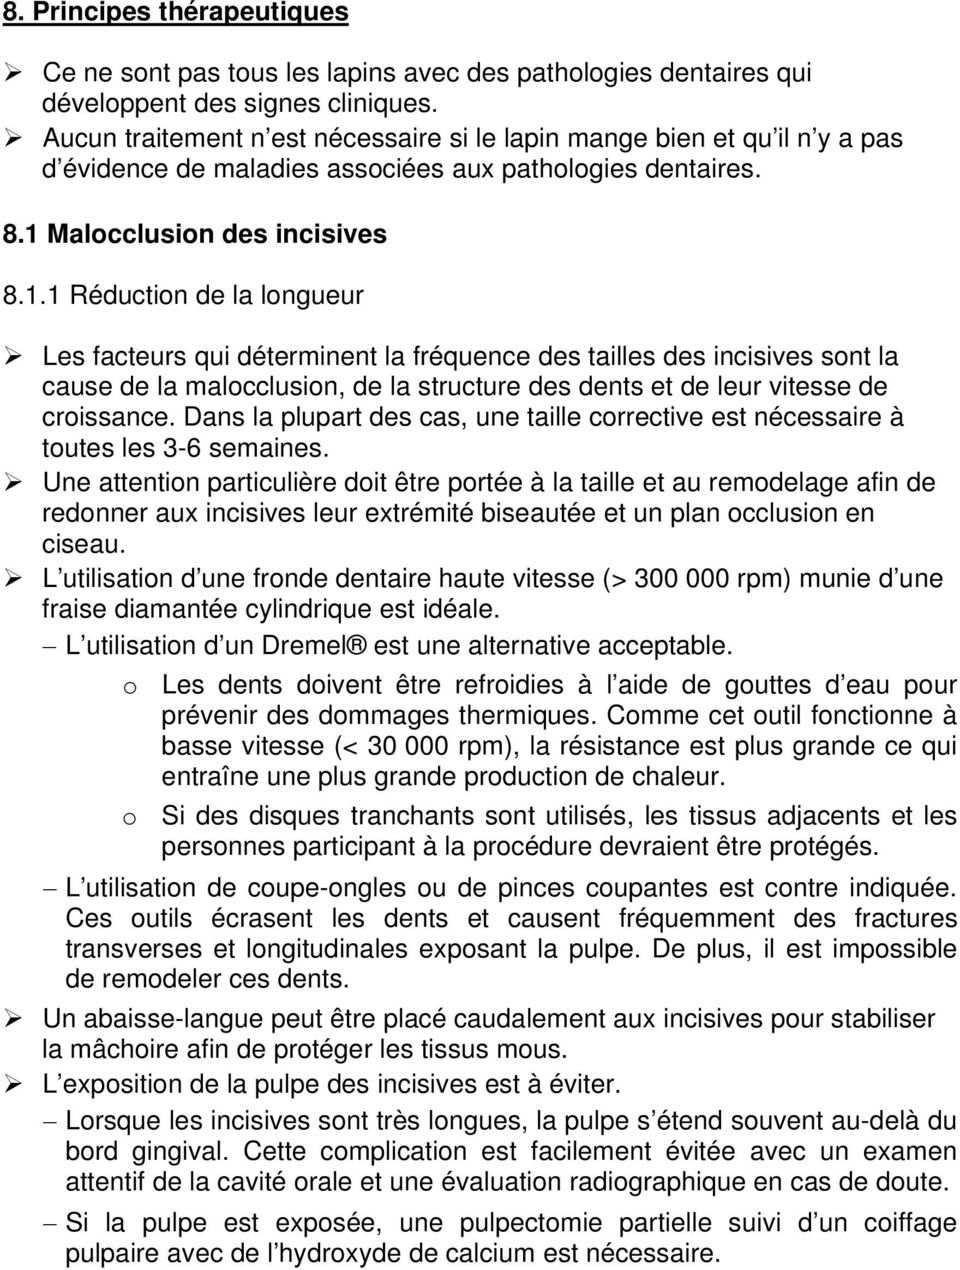 Malocclusion des incisives 8.1.